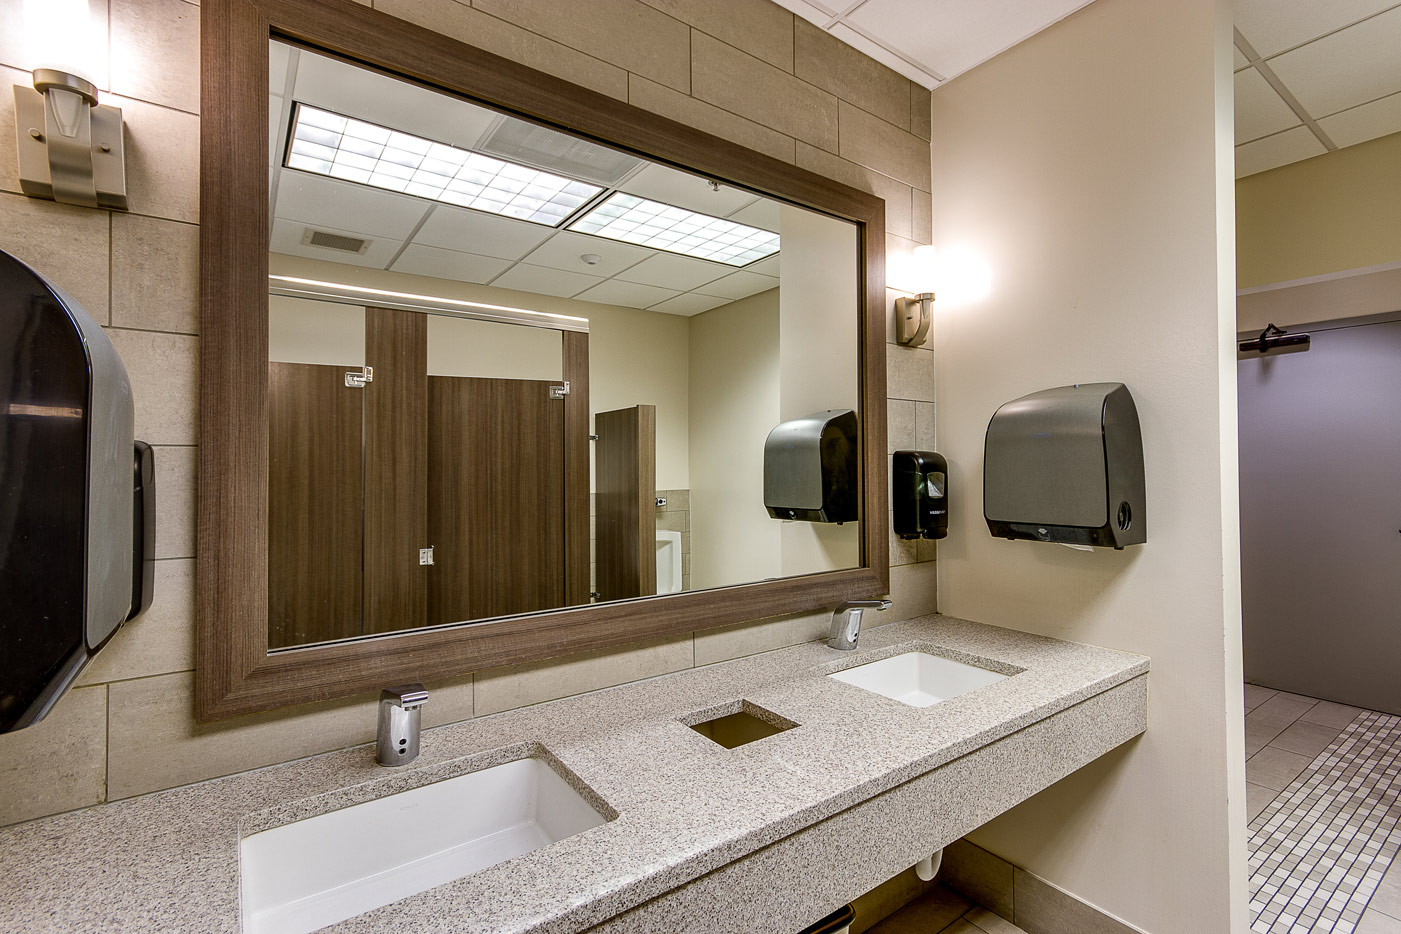 mens' room sinks and mirror